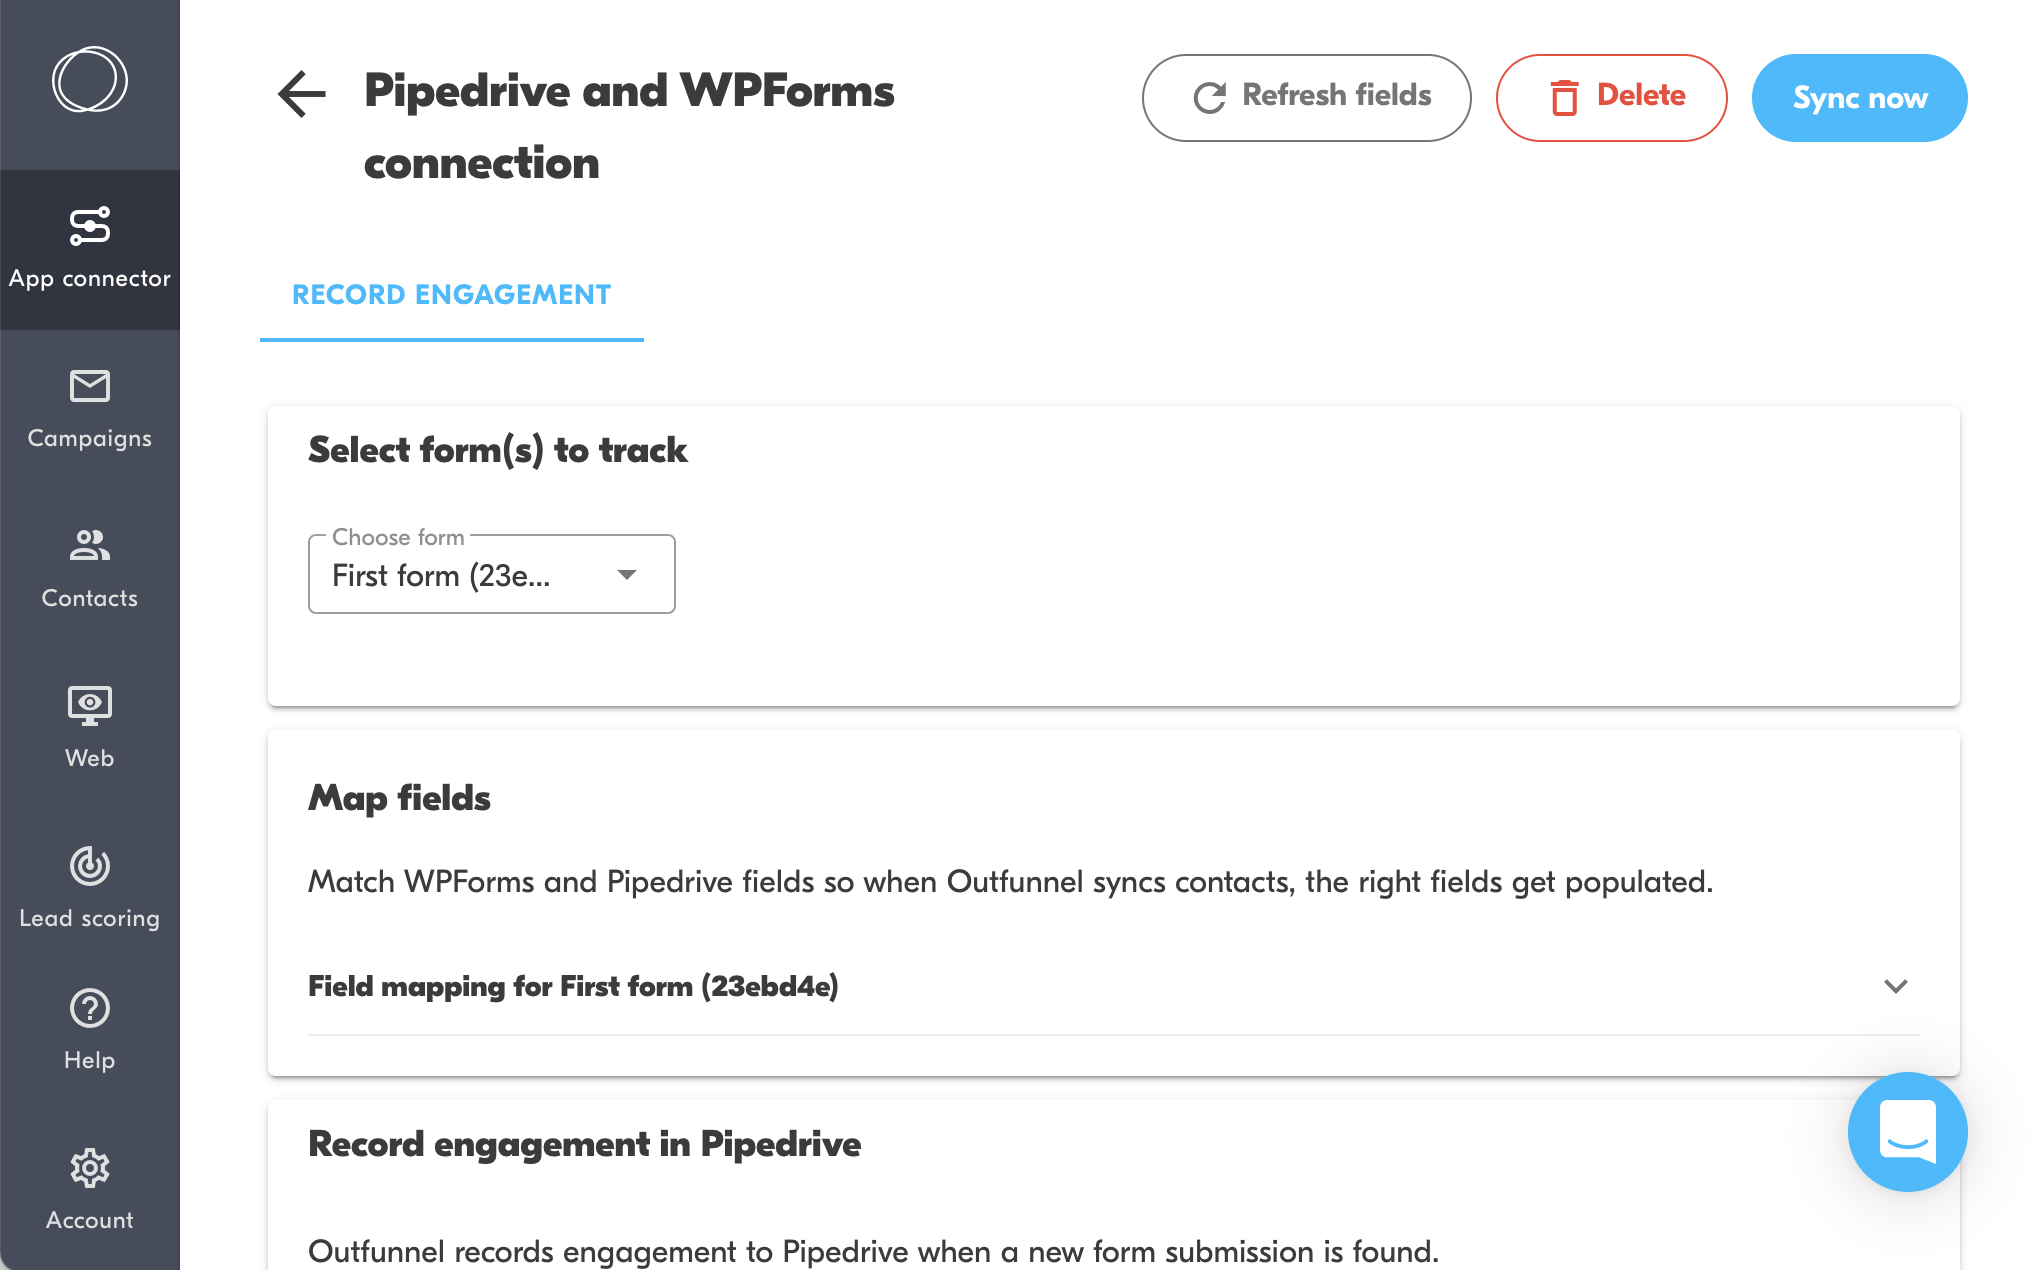 pipedrive and wpforms connection